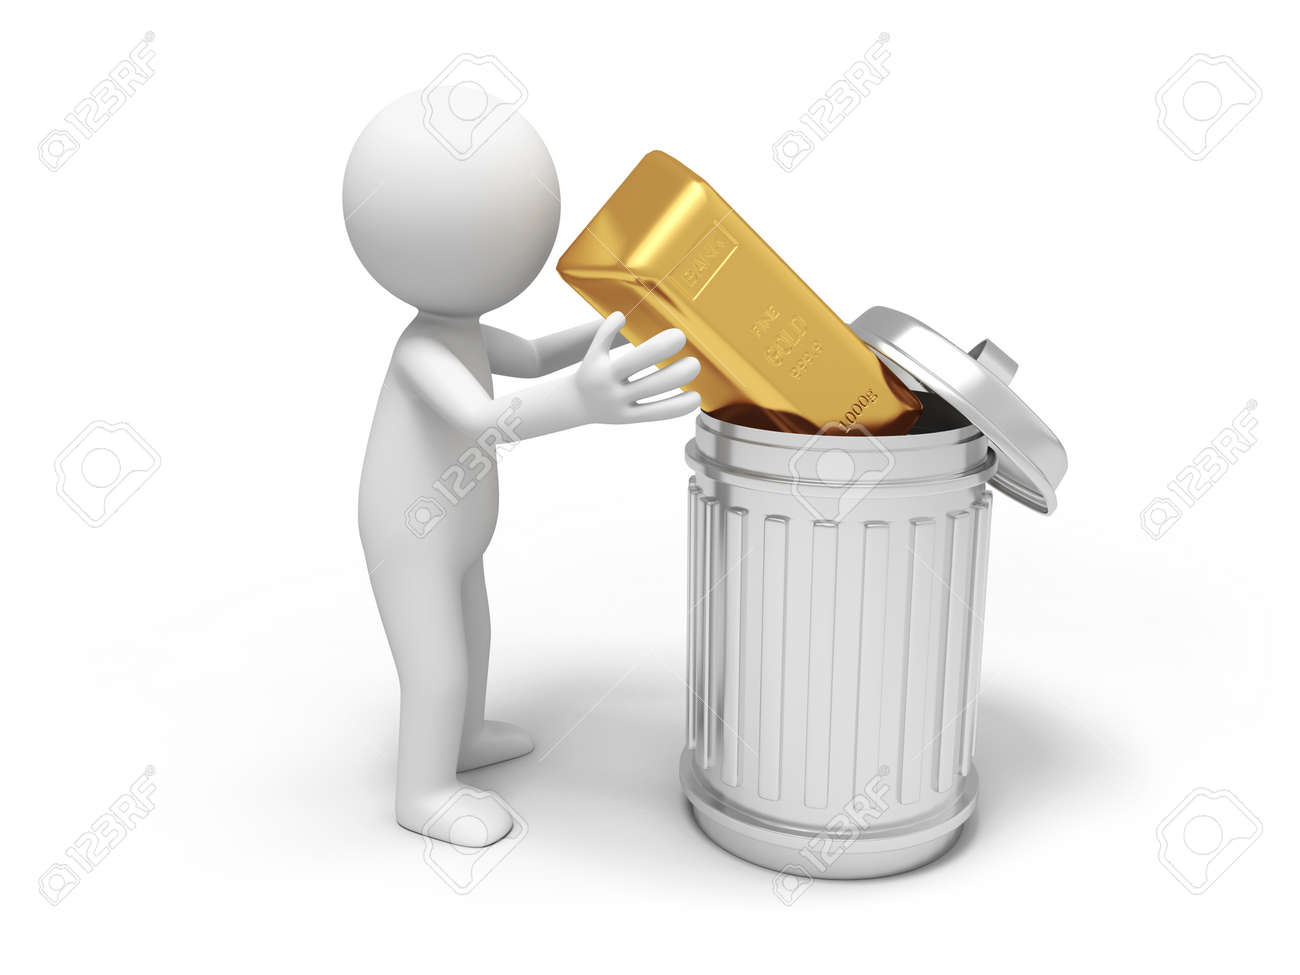 Image result for gold in trash